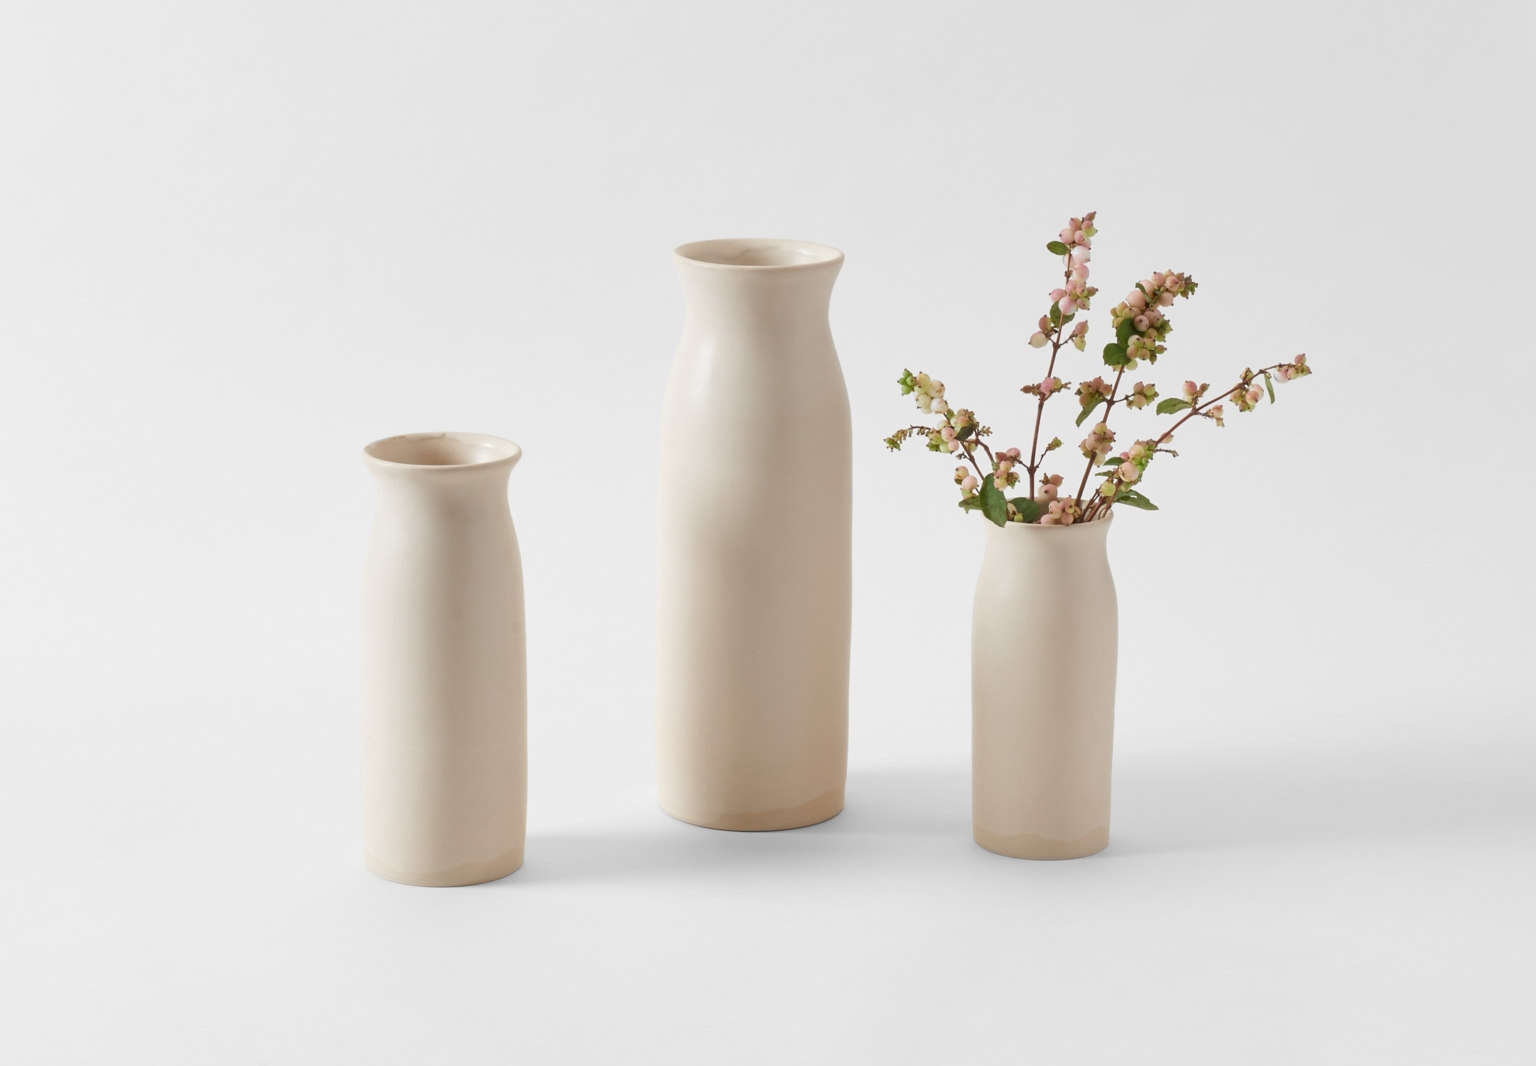 christiane perrochon christiane perrochon sand bottle vases march sf